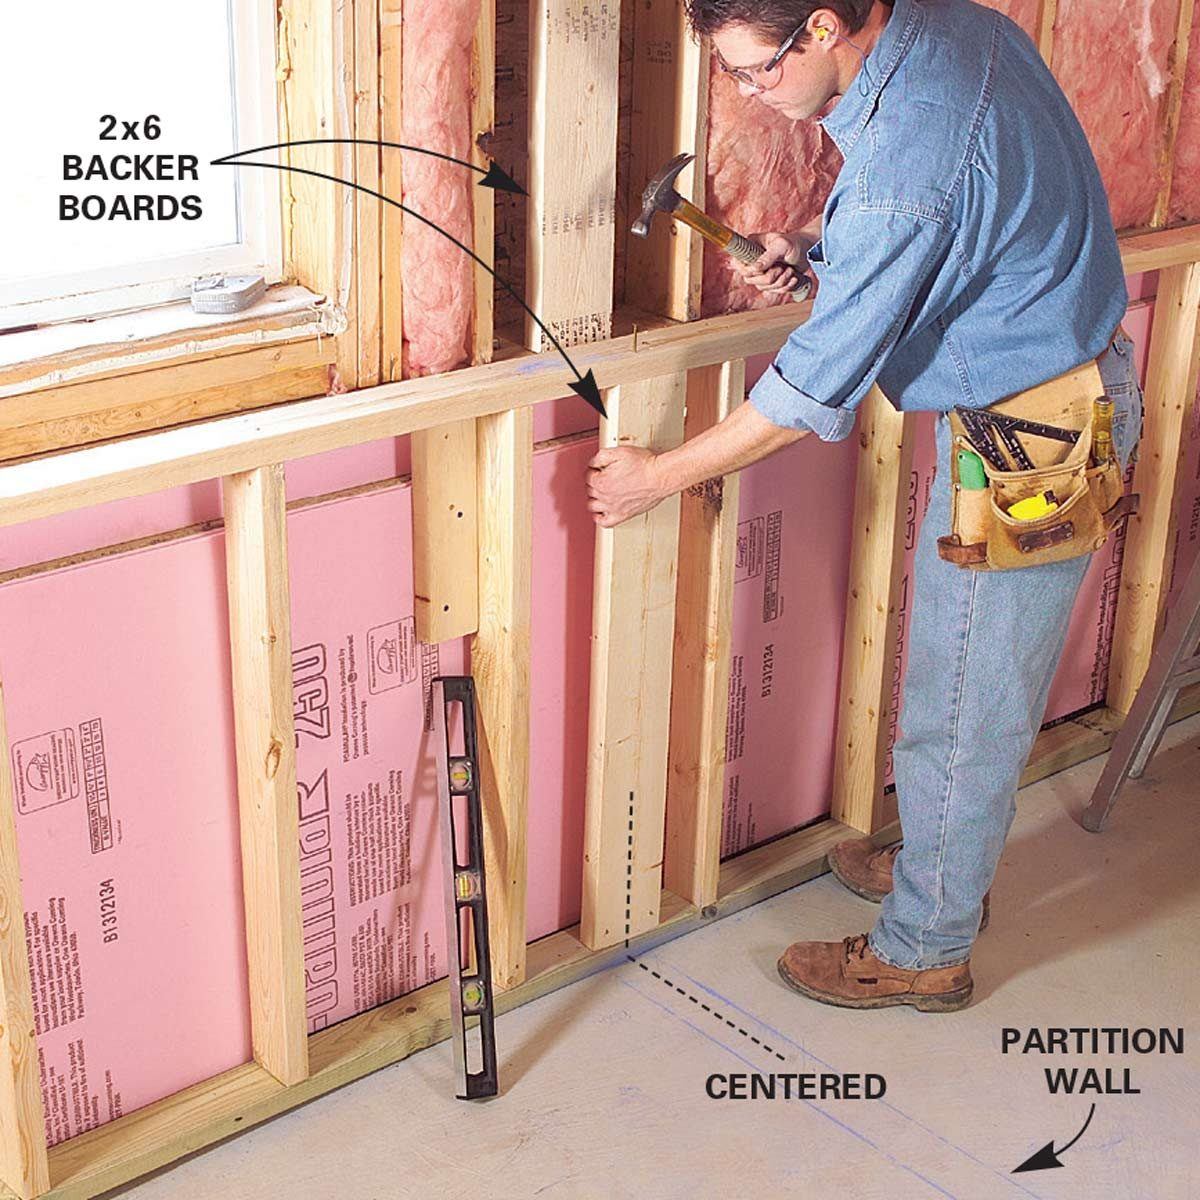 Finishing a Basement - Install Backer Boards